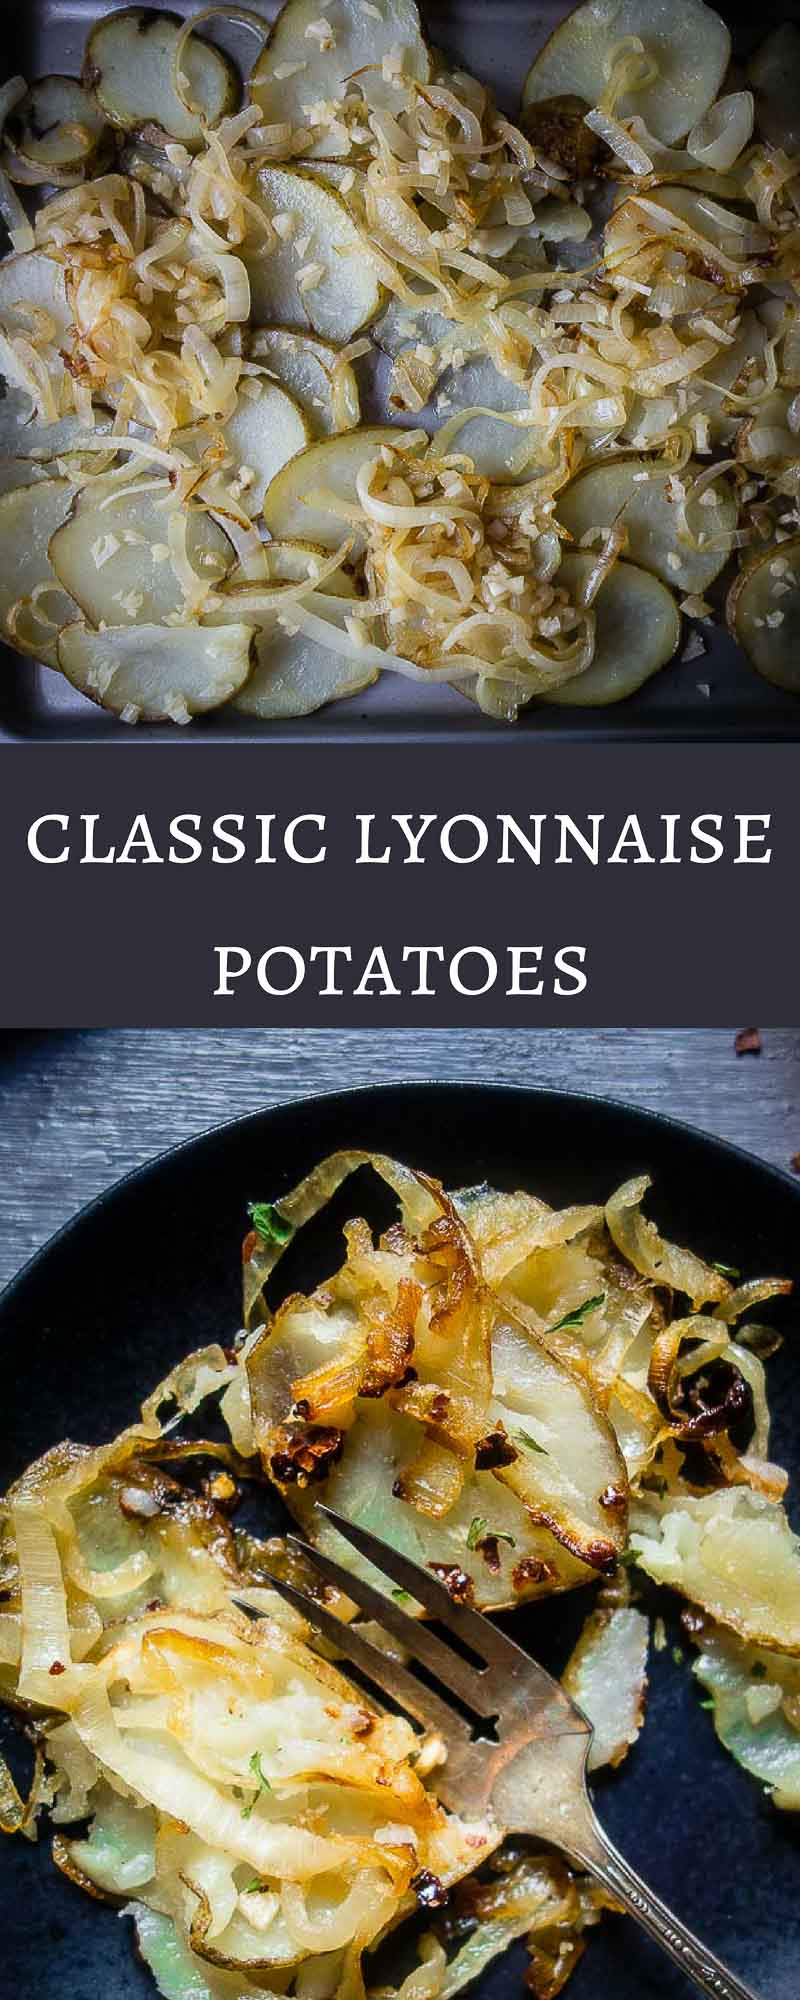 These classic Lyonnaise Potatoes are smothered in duck fat then baked until crispy, mixed with caramelized onions and garlic, then coated in a mixture of crushed chili and fresh lemon juice.baked lyonnaise potatoes | classic french potatoes | potatoes lyonnaise | duck fat potatoes | easy roast potatoes | chili lemon potatoes | spicy potatoes | crispy potatoes | potatoes and onion | baked lyonnaise potatoes